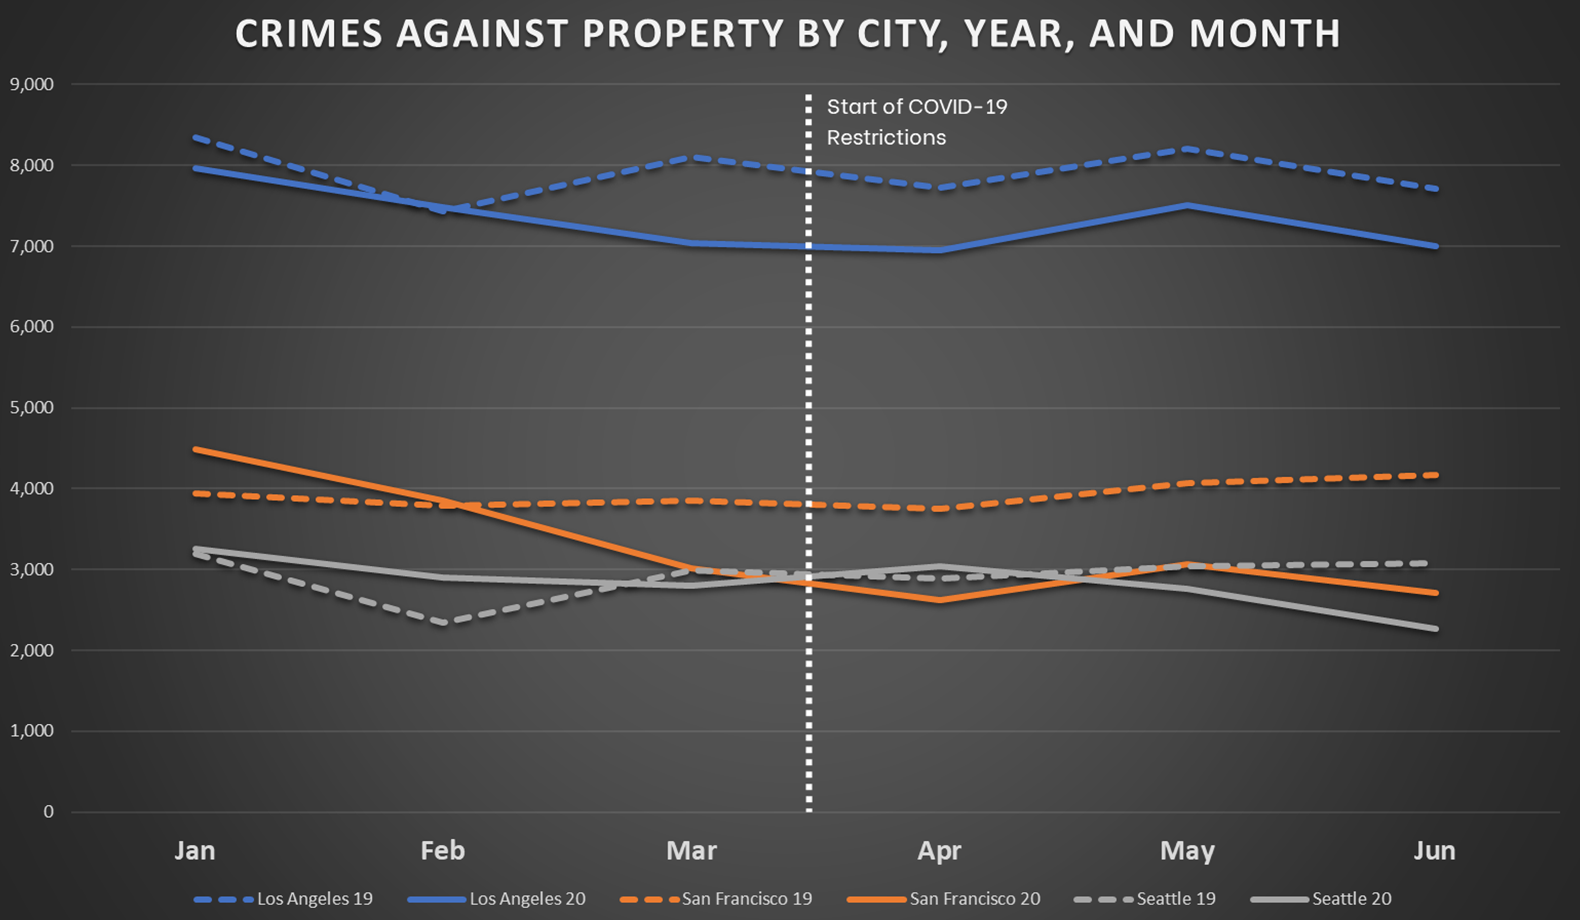 Crimes Against Persons by City, Year, and Month for Western Cities